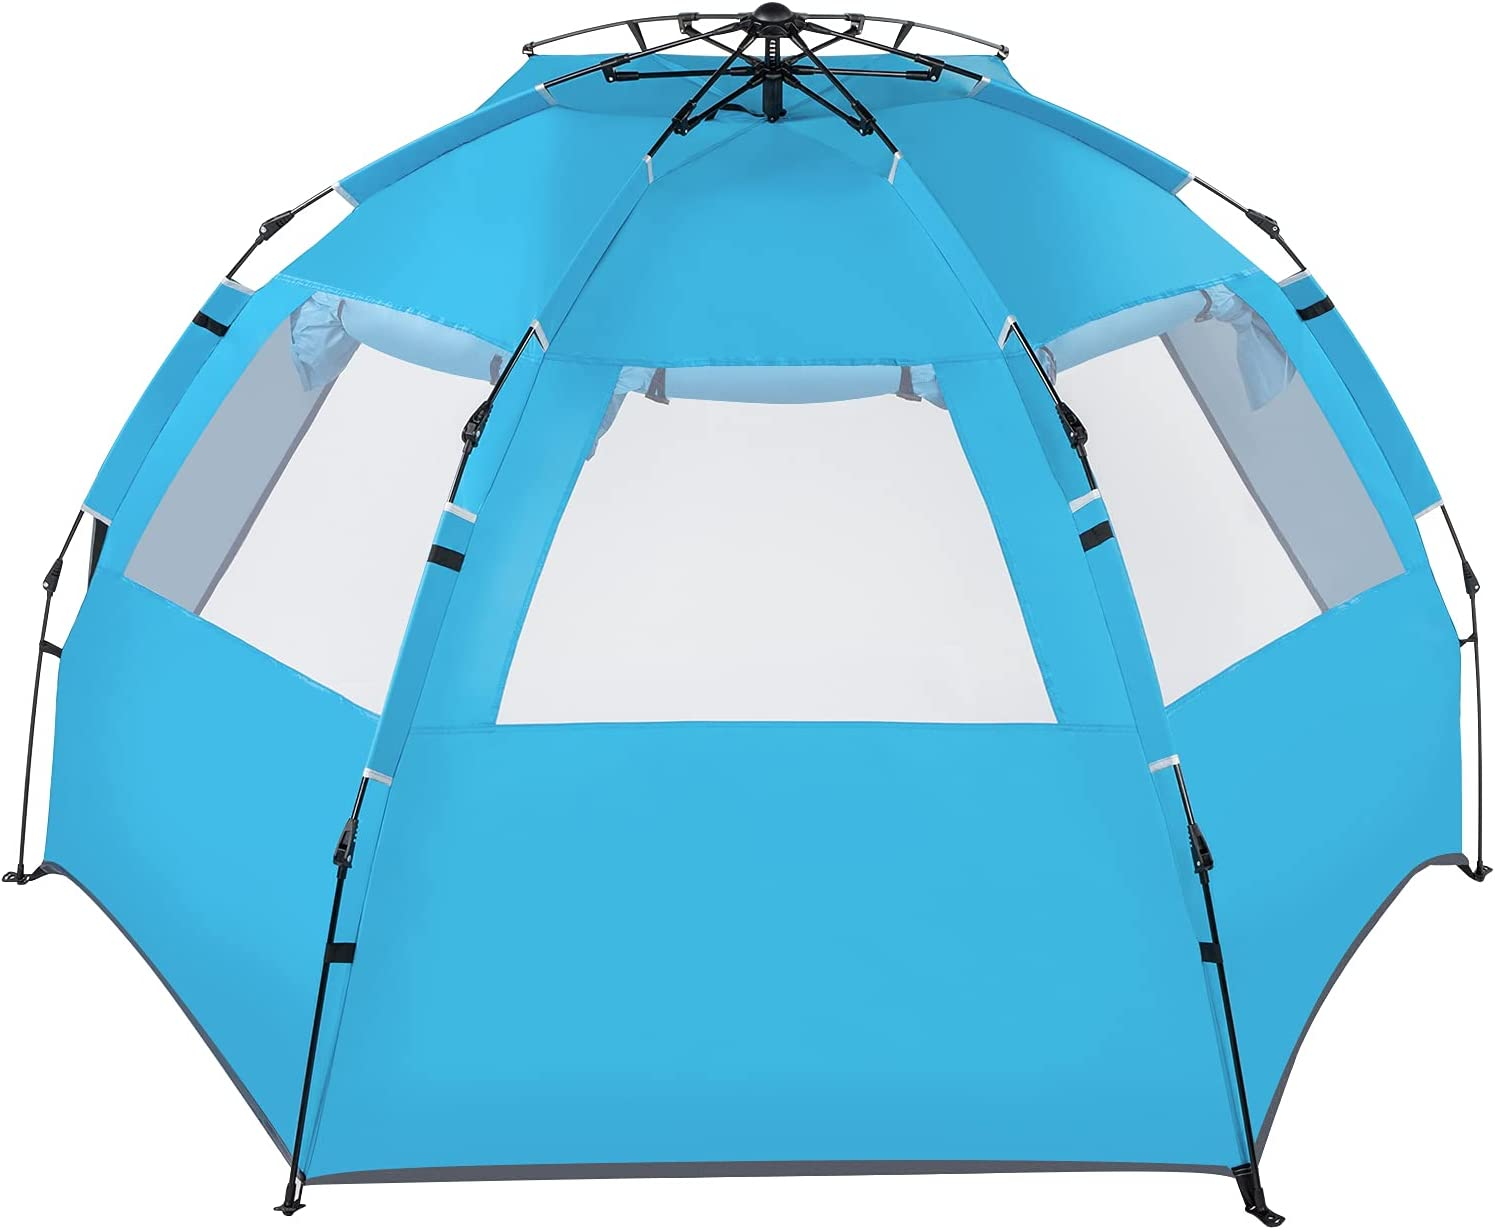 Fitmerry Easy Setup 40% OFF Cheap Sale Beach Tent Max 71% OFF Sun for Shelter - Portable